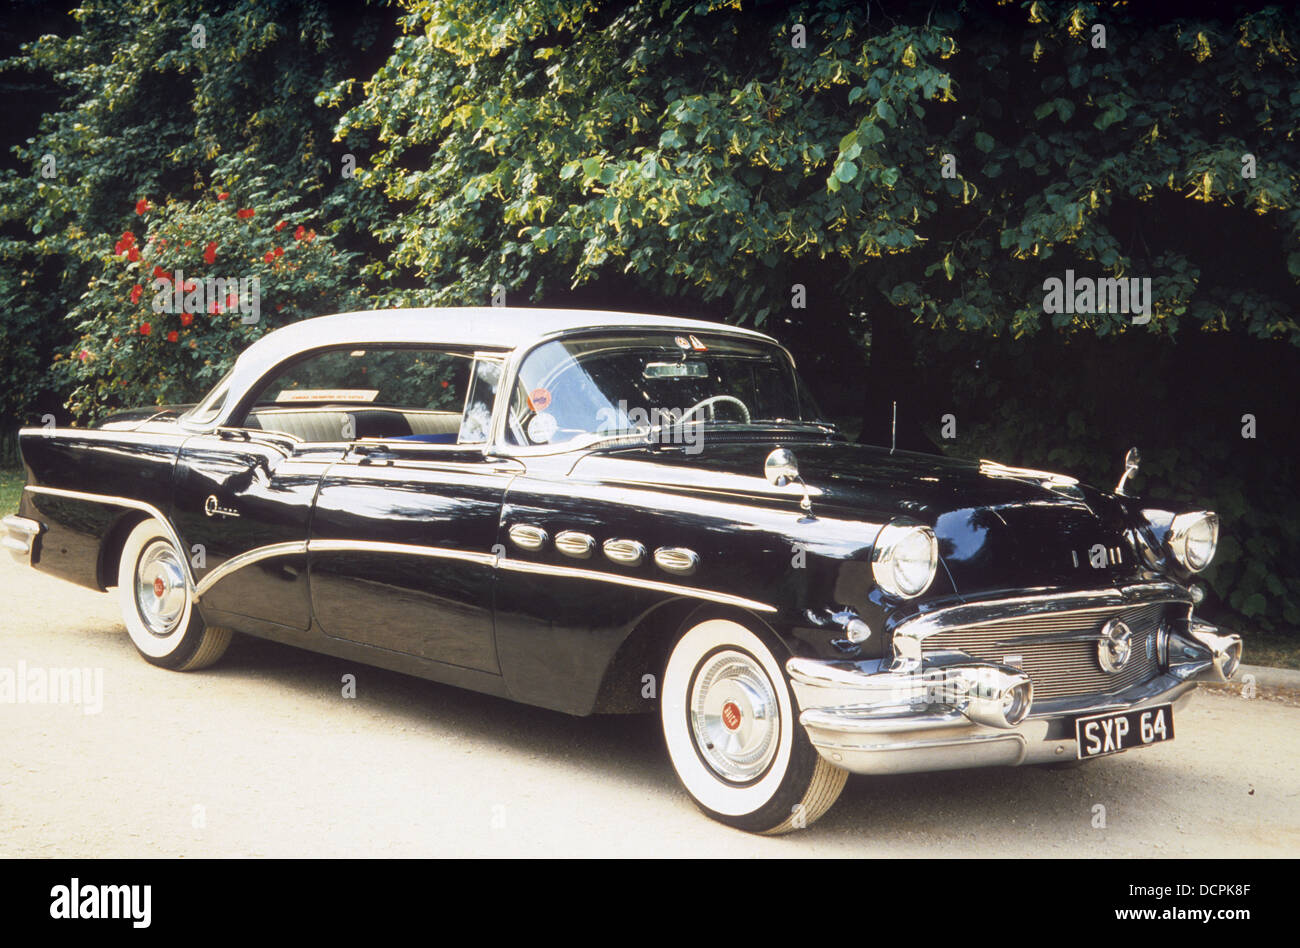 1956 BUICK SUPER. Photo Nicky Wright - Stock Image